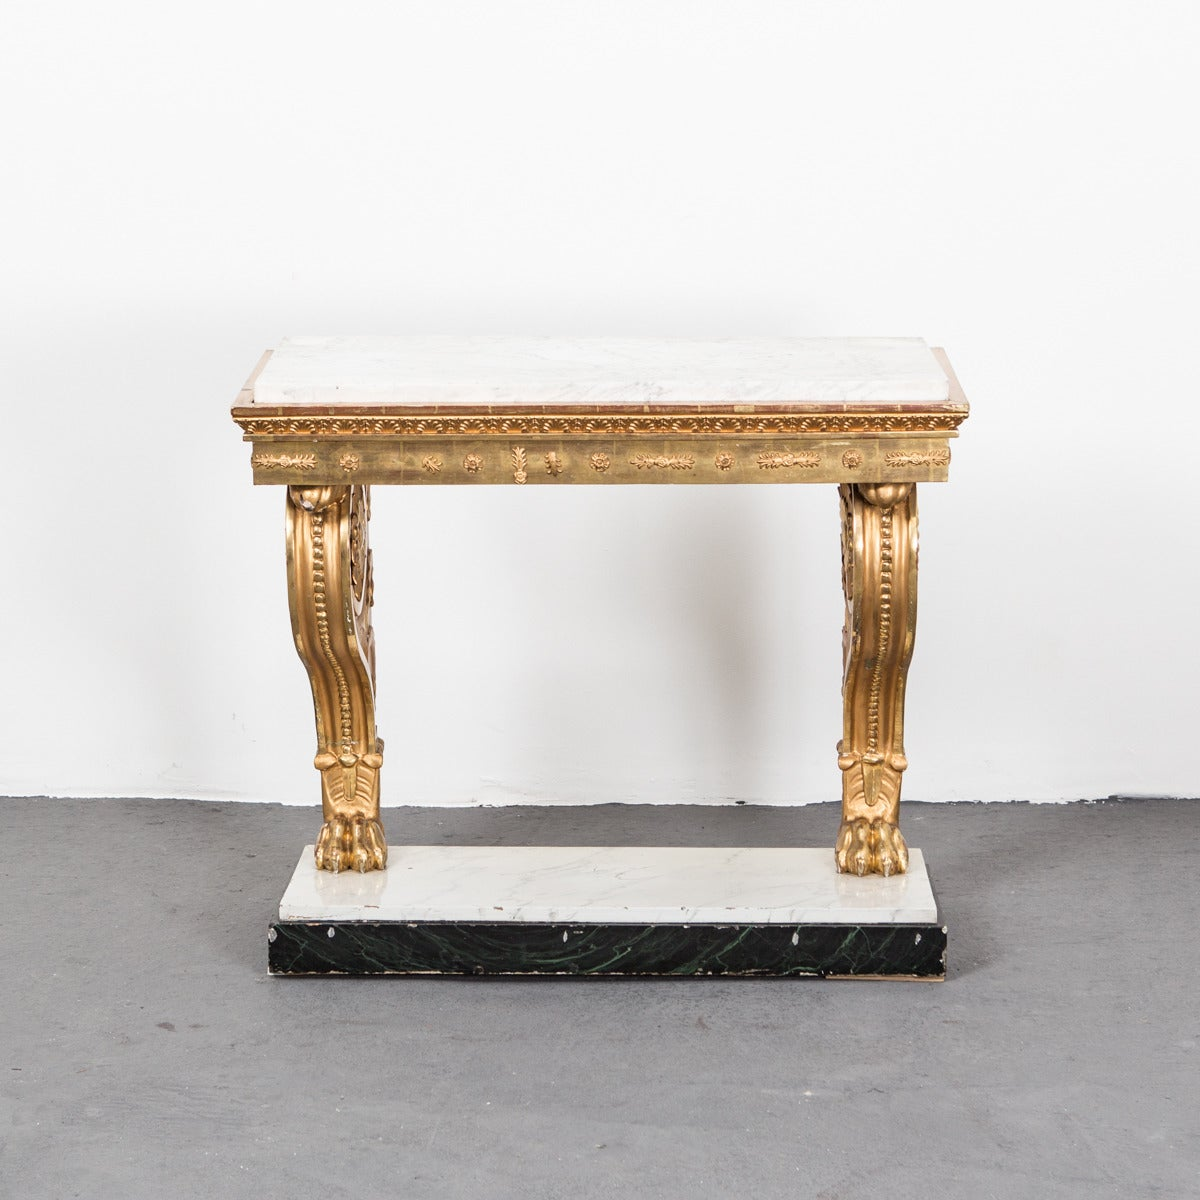 Table Console Swedish Gilded Carrara Marble Top Empire Neoclassical Sweden. A Karl Johan console table made during the Karl Johan period, circa 1810 in Sweden. Gilded wood with carvings typical for the period. Legs ending with lions feet. Top made